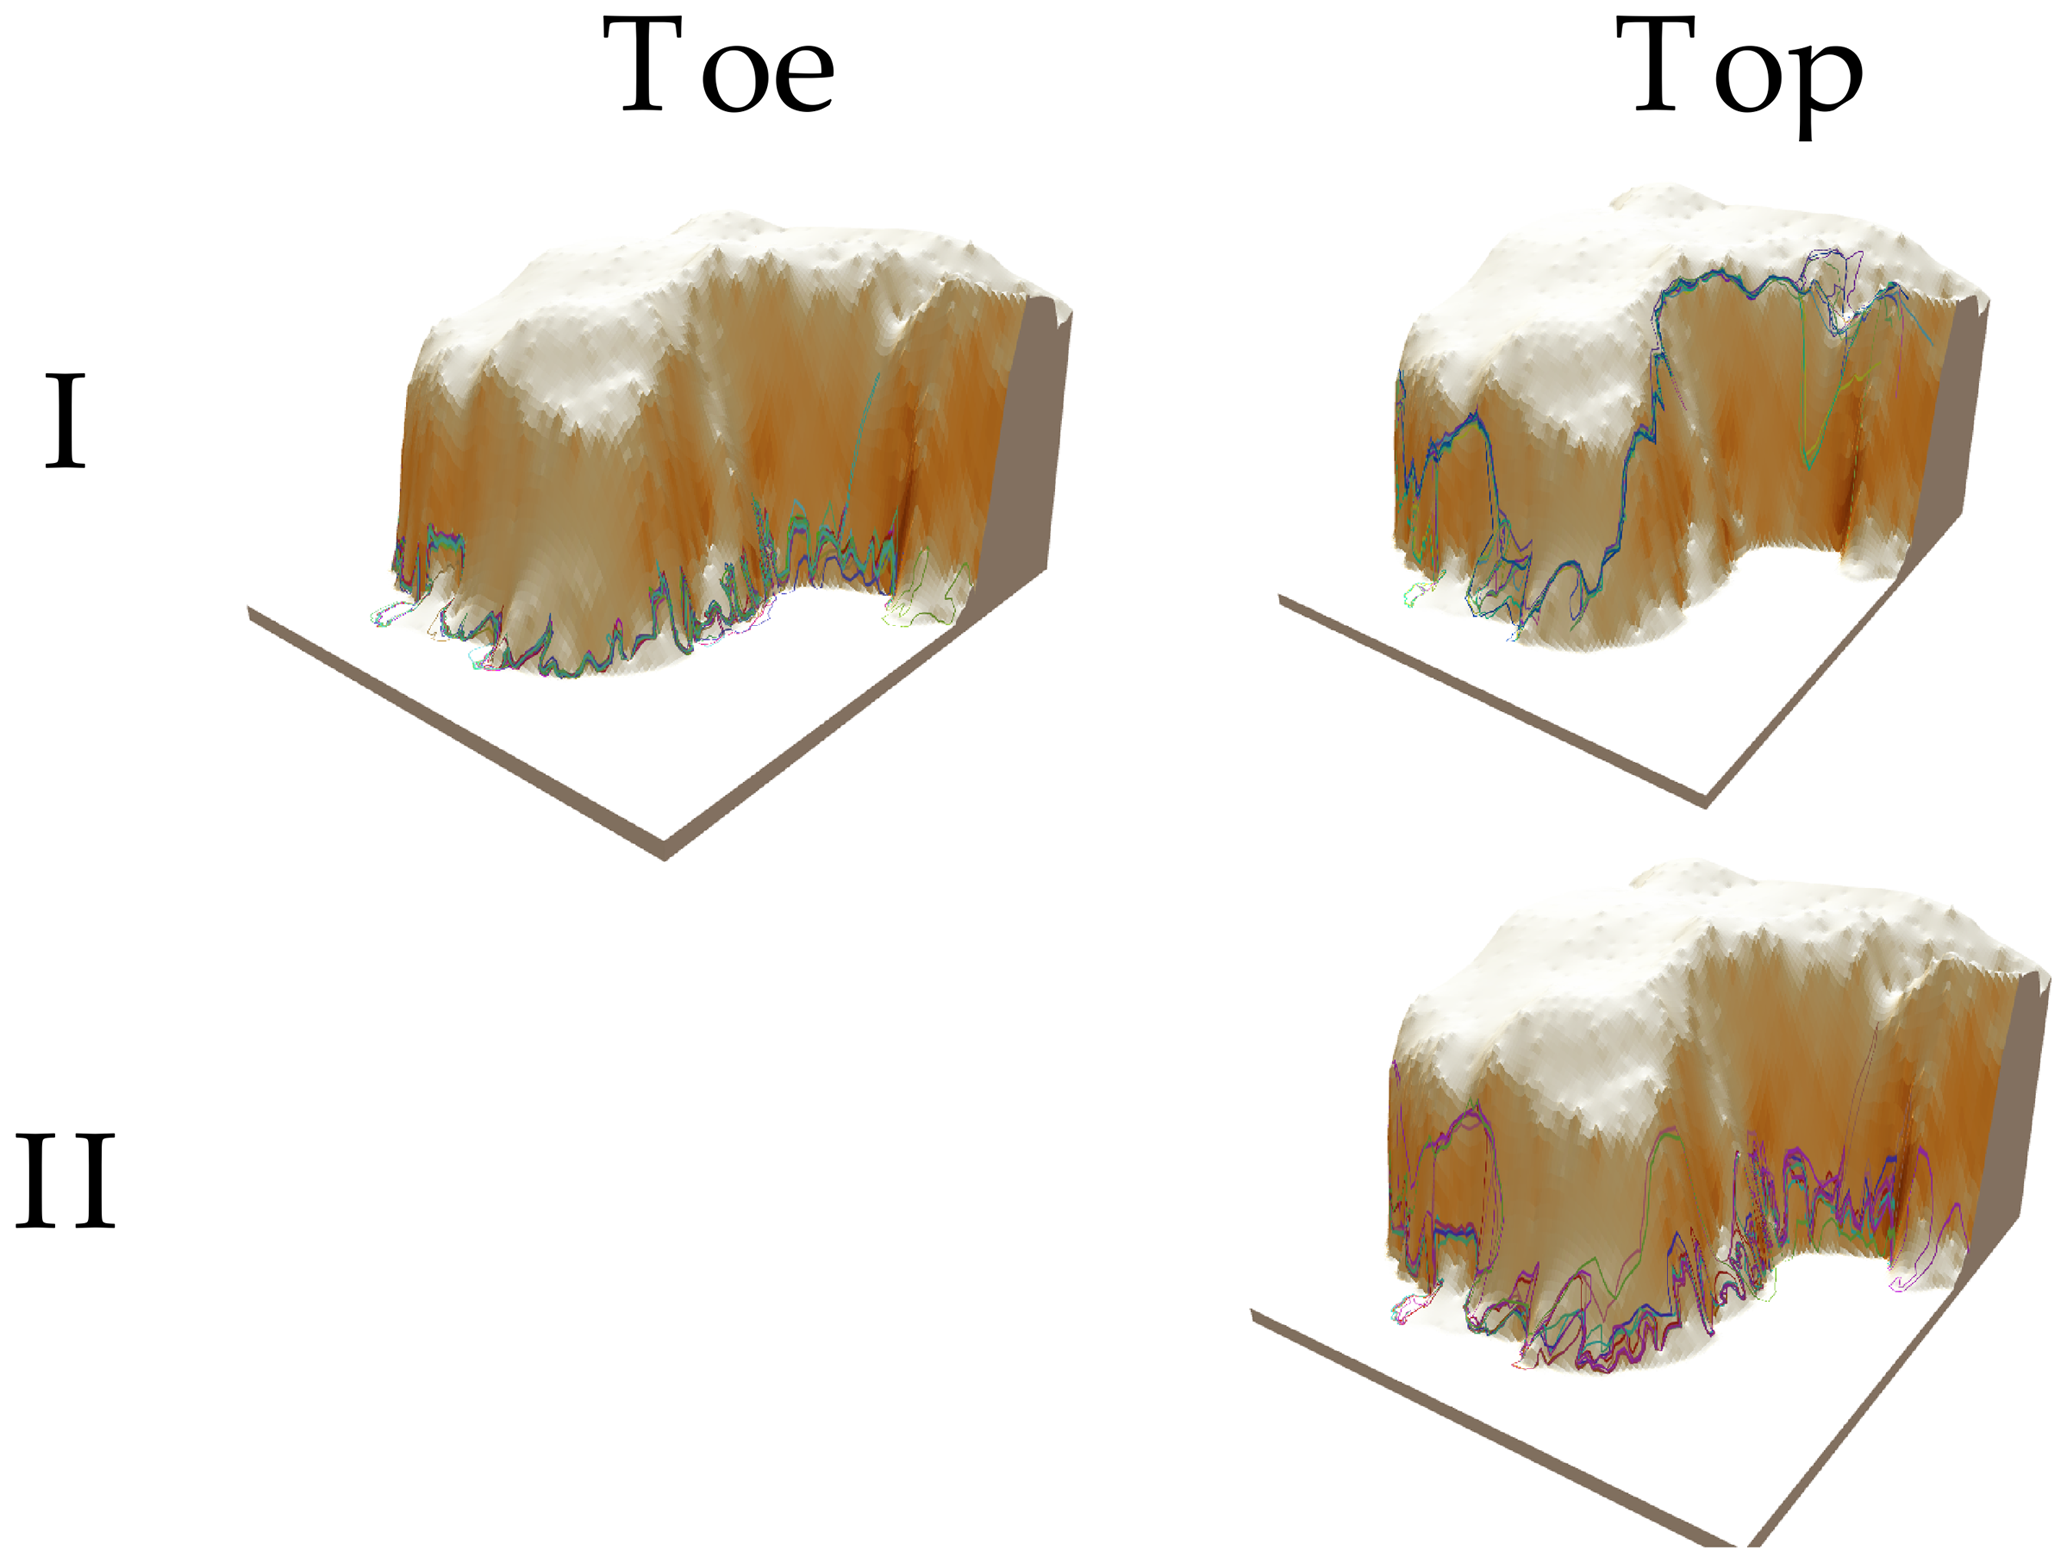 GMD - Development of an automatic delineation of cliff top